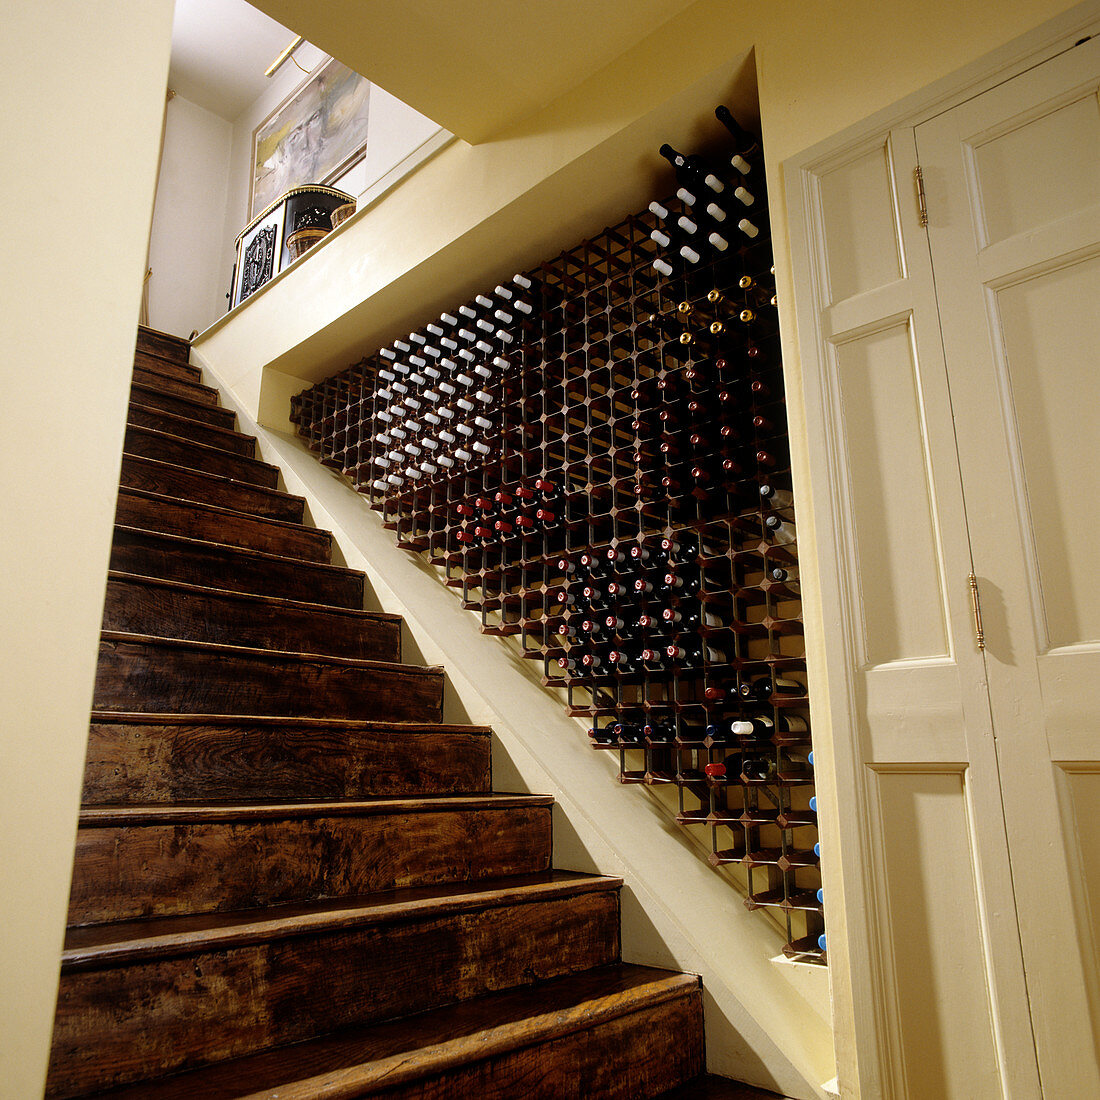 Niche with integrated wine rack alongside old wooden staircase